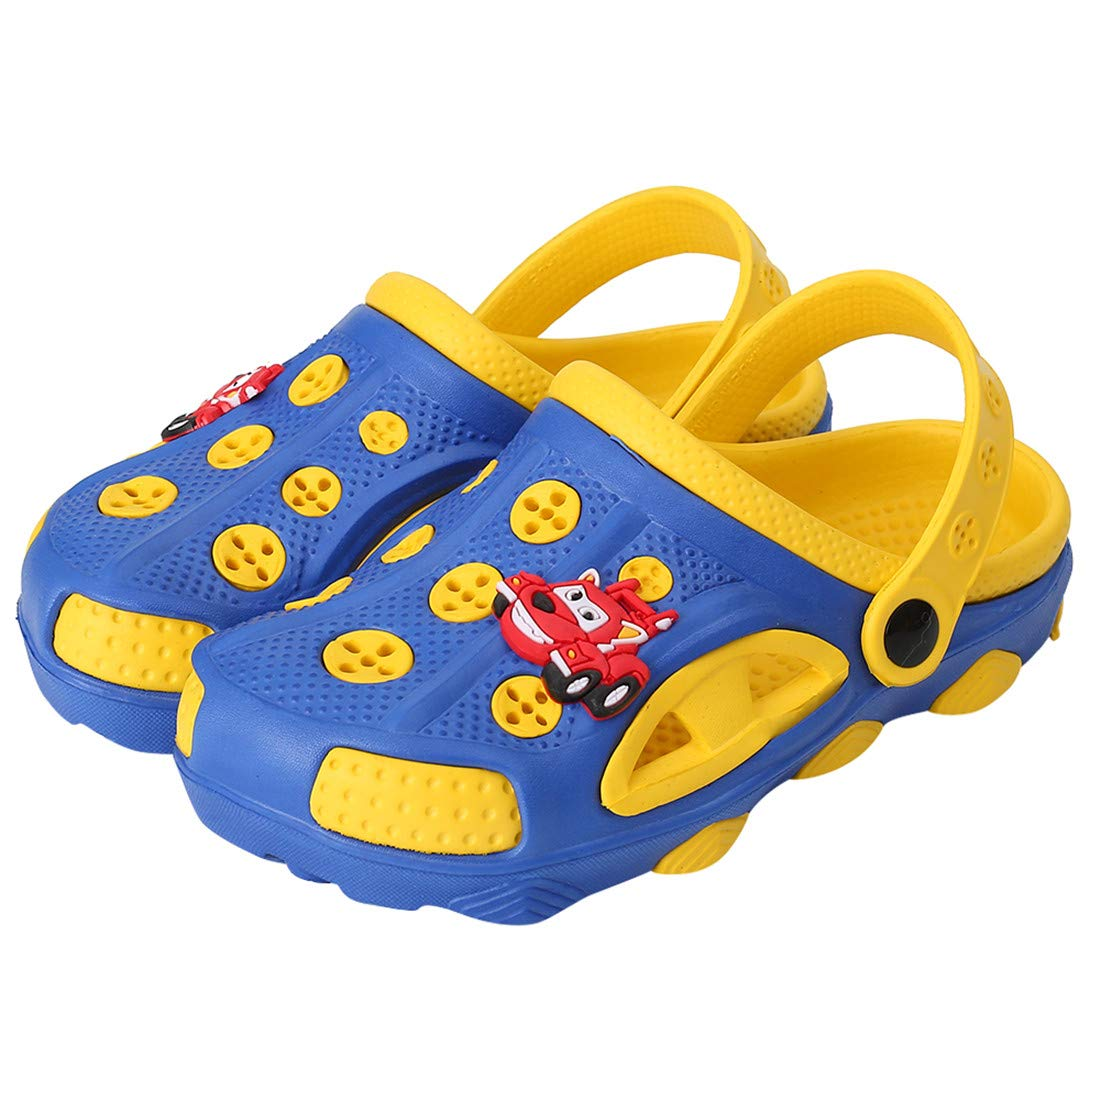 Fashion-zone Toddlers Cartoon Slides Sandals-Lightweight Garden Clogs Beach Sandals for Toddler Boys Girls (6.5 M US Toddler, Blue)